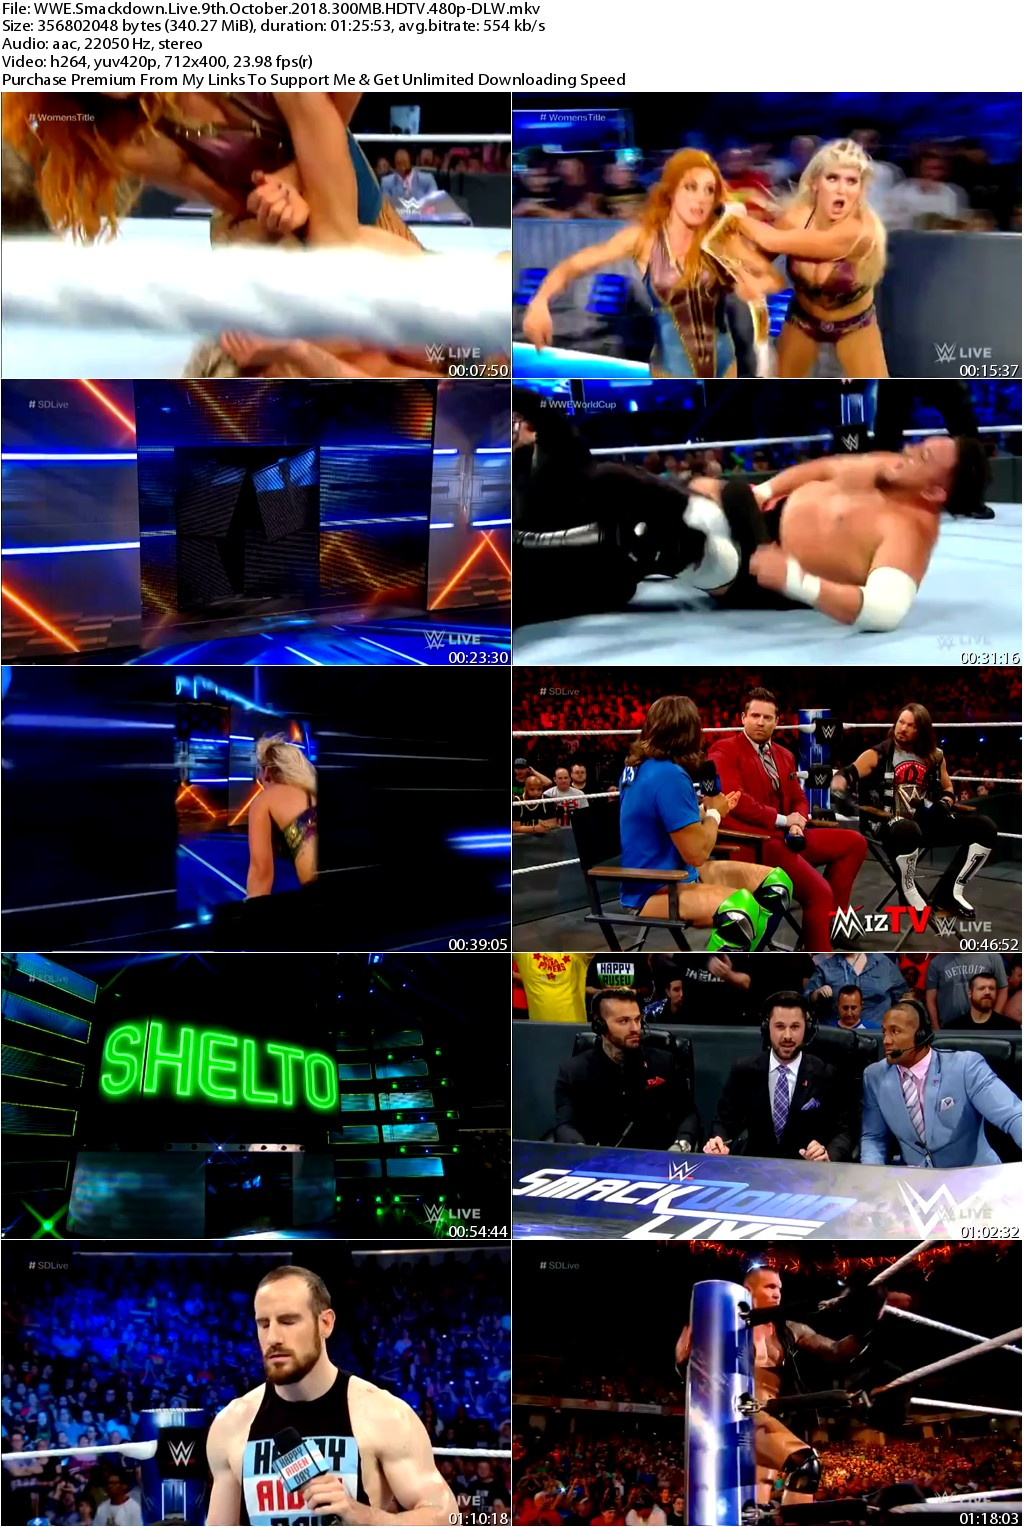 WWE Smackdown Live 9th October 2018 300MB HDTV 480p-DLW